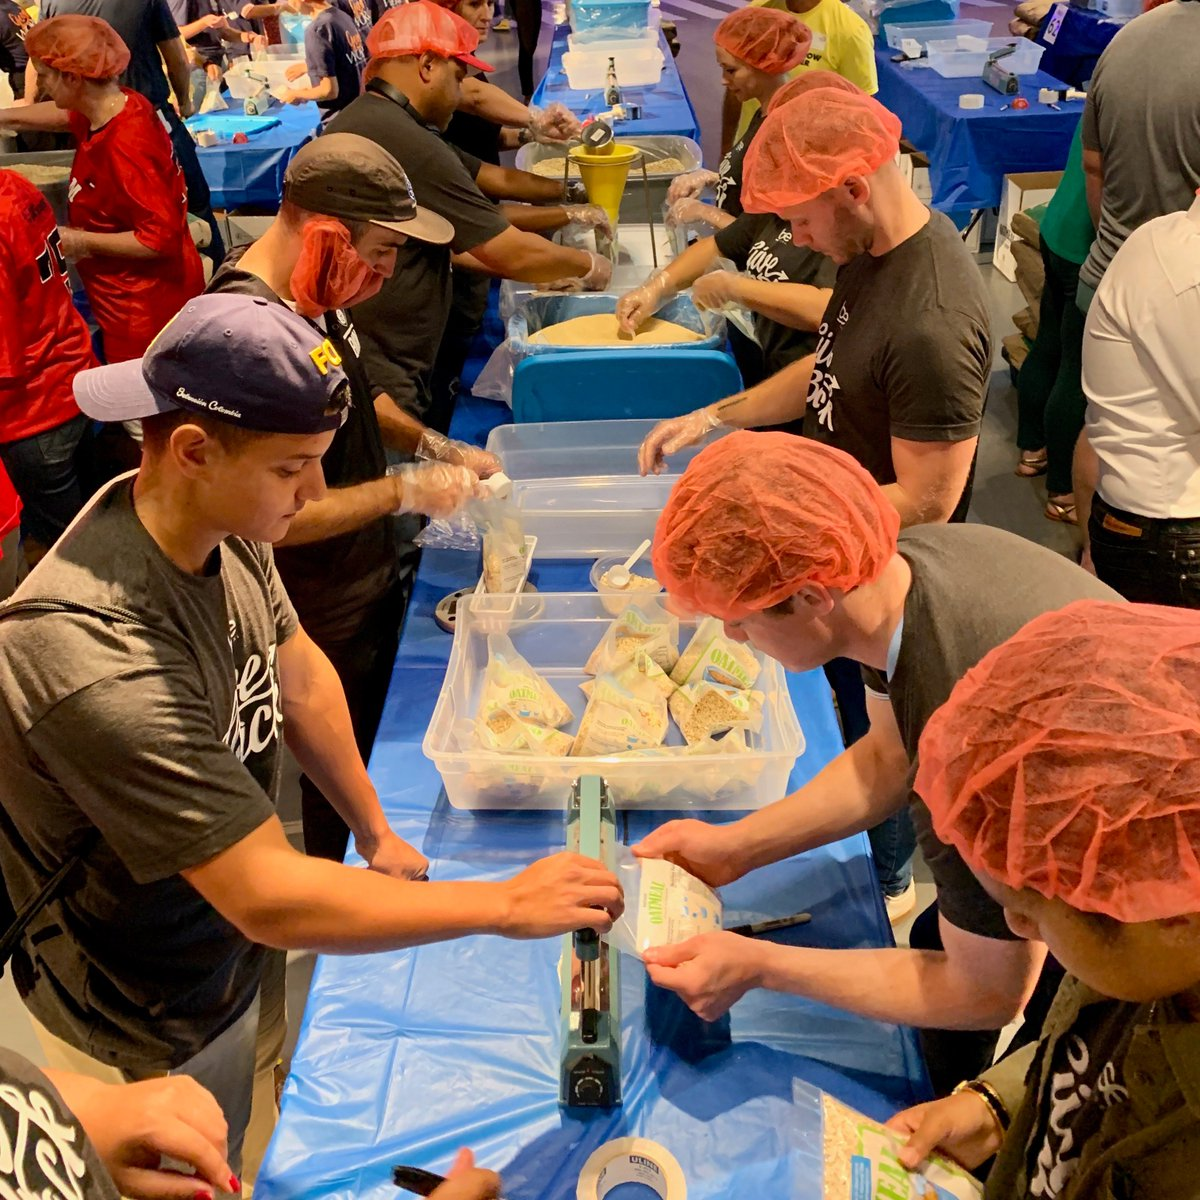 Today, our employees teamed up with Tomorrow Together and more than 4,000 volunteers on the @IntrepidMuseum  for the September 11 National Day of Service, helping pack over 1 million meals for New Yorkers in need.